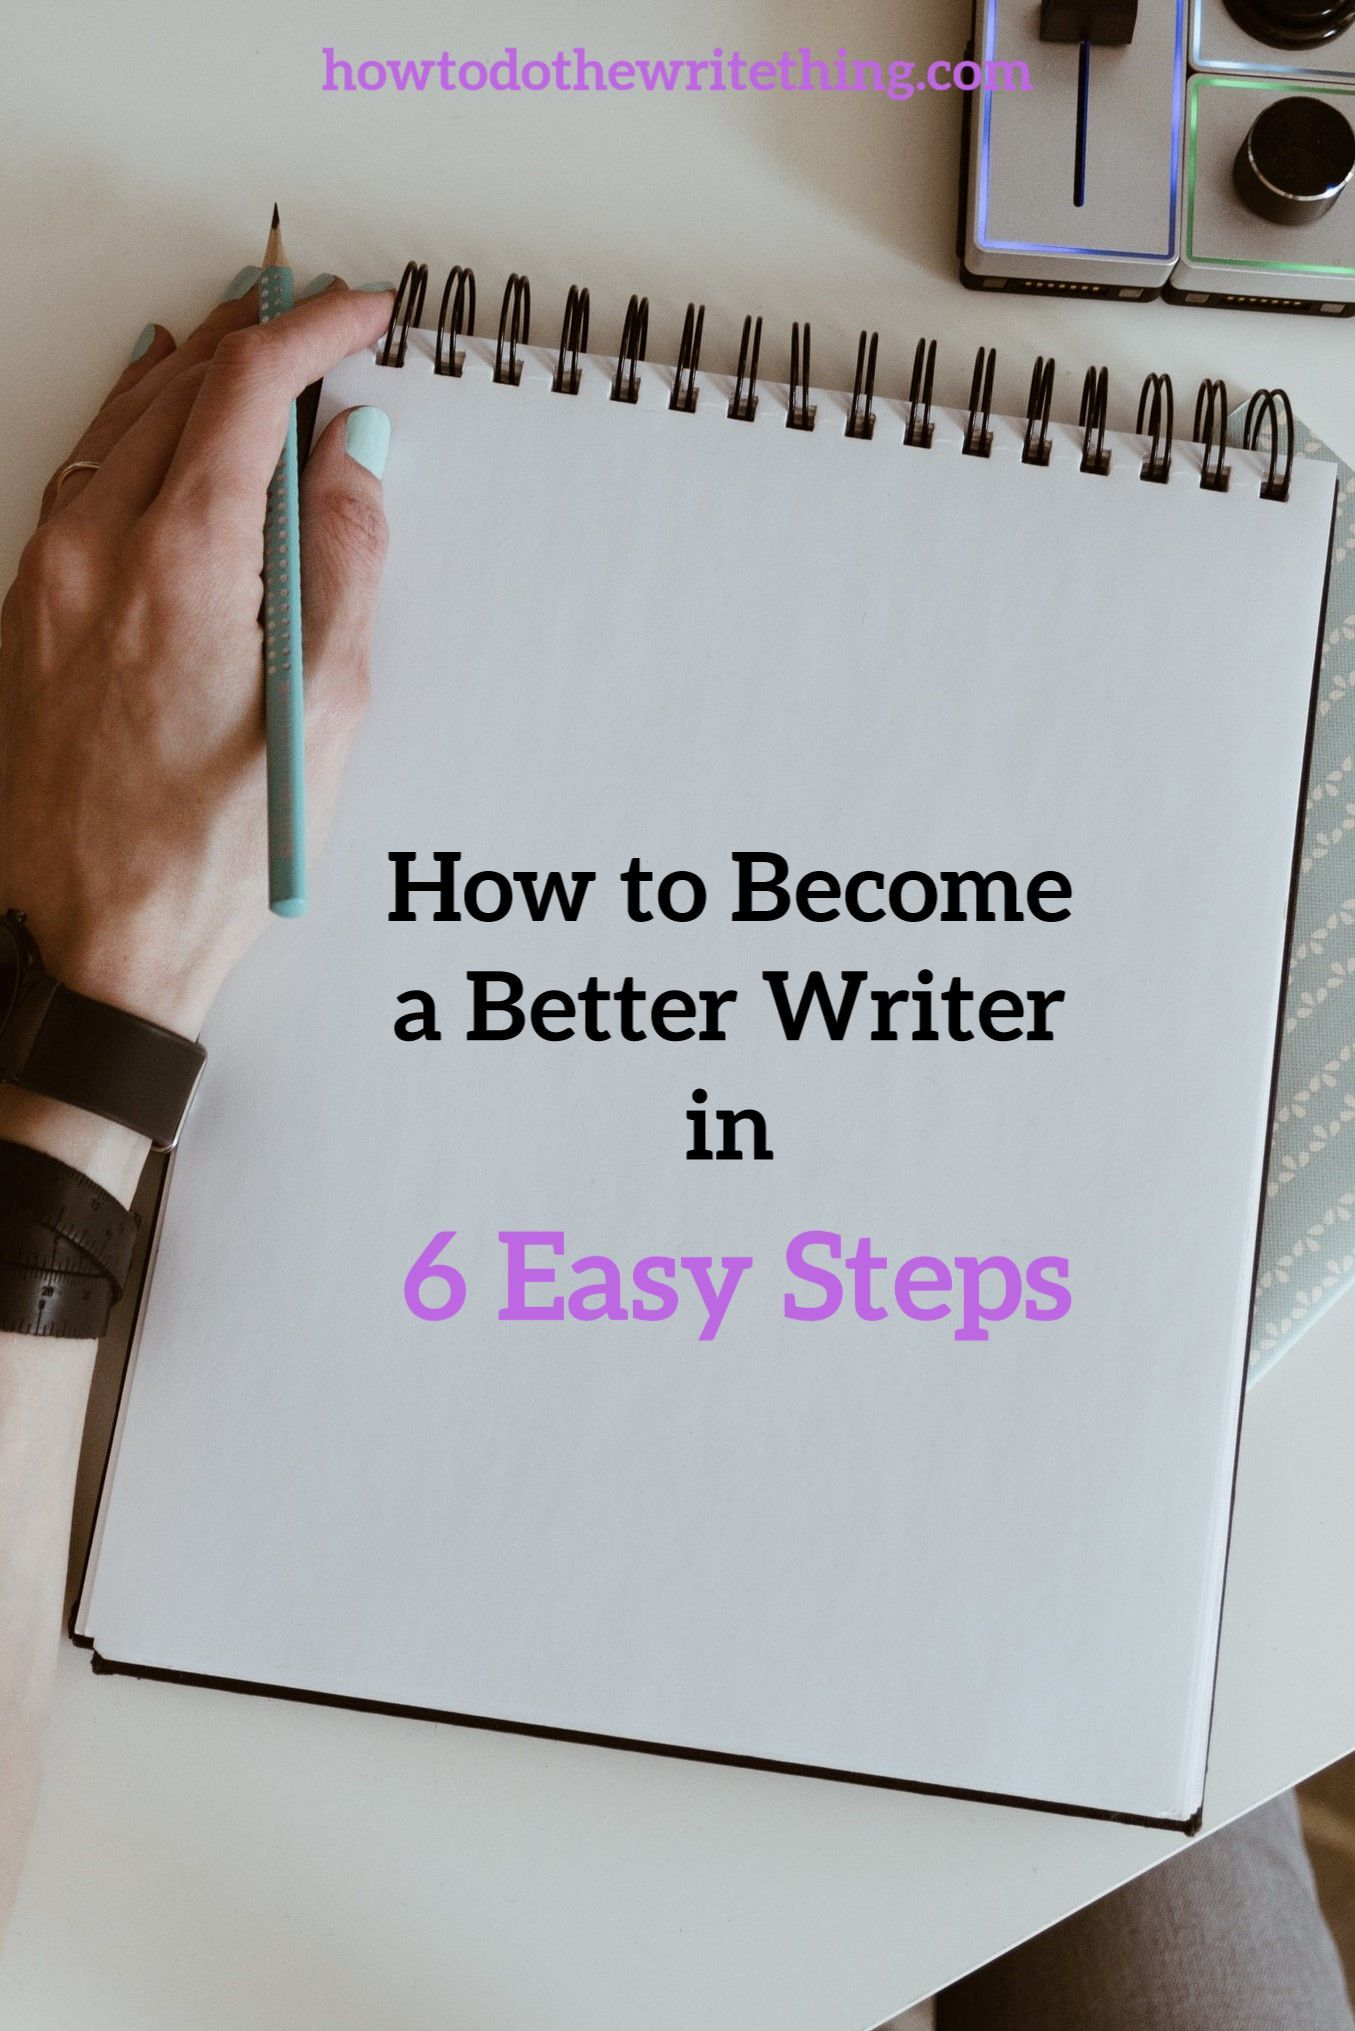 How to Become a Better Writer in 12 Easy Steps  Book writing tips